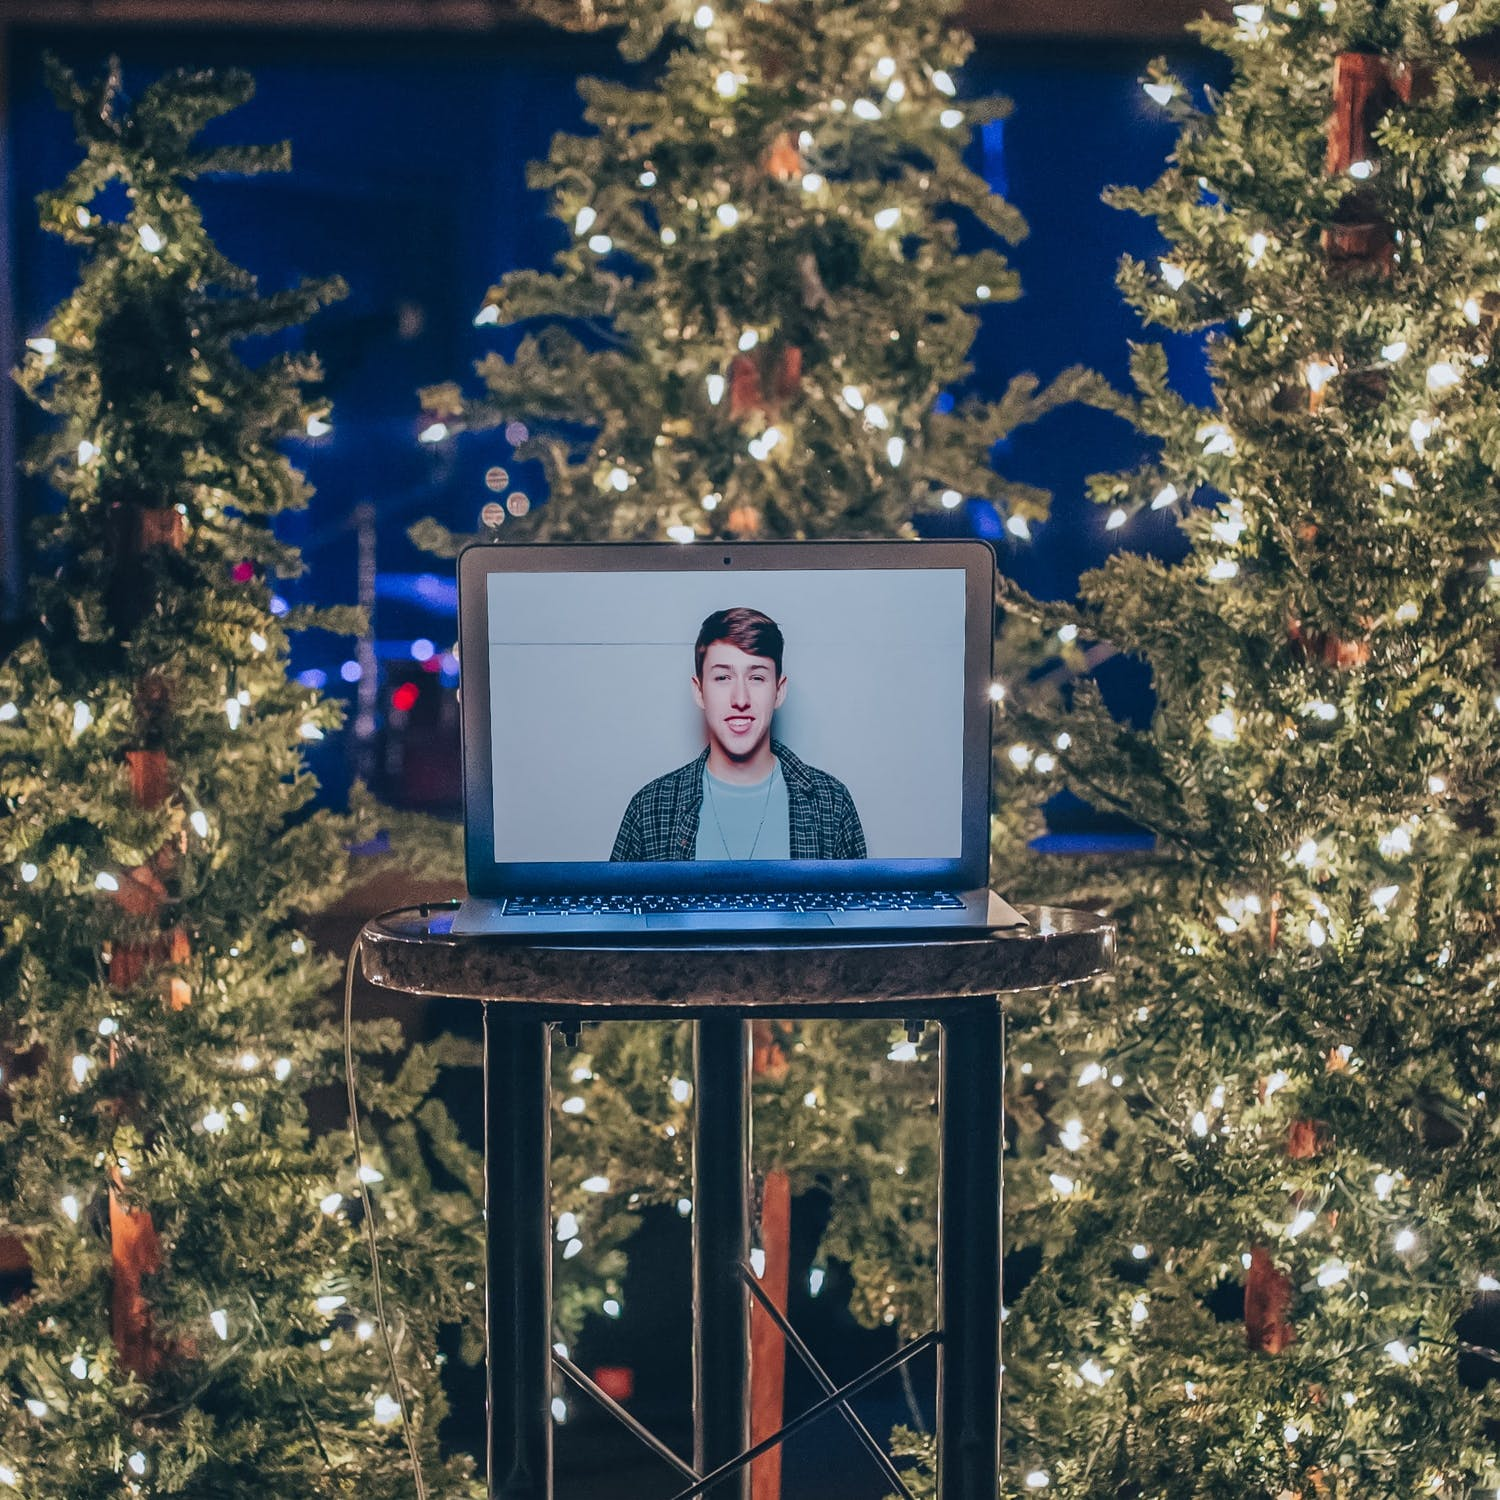 This Year, Let's Be Grateful for the Chance to Have a Virtual Christmas